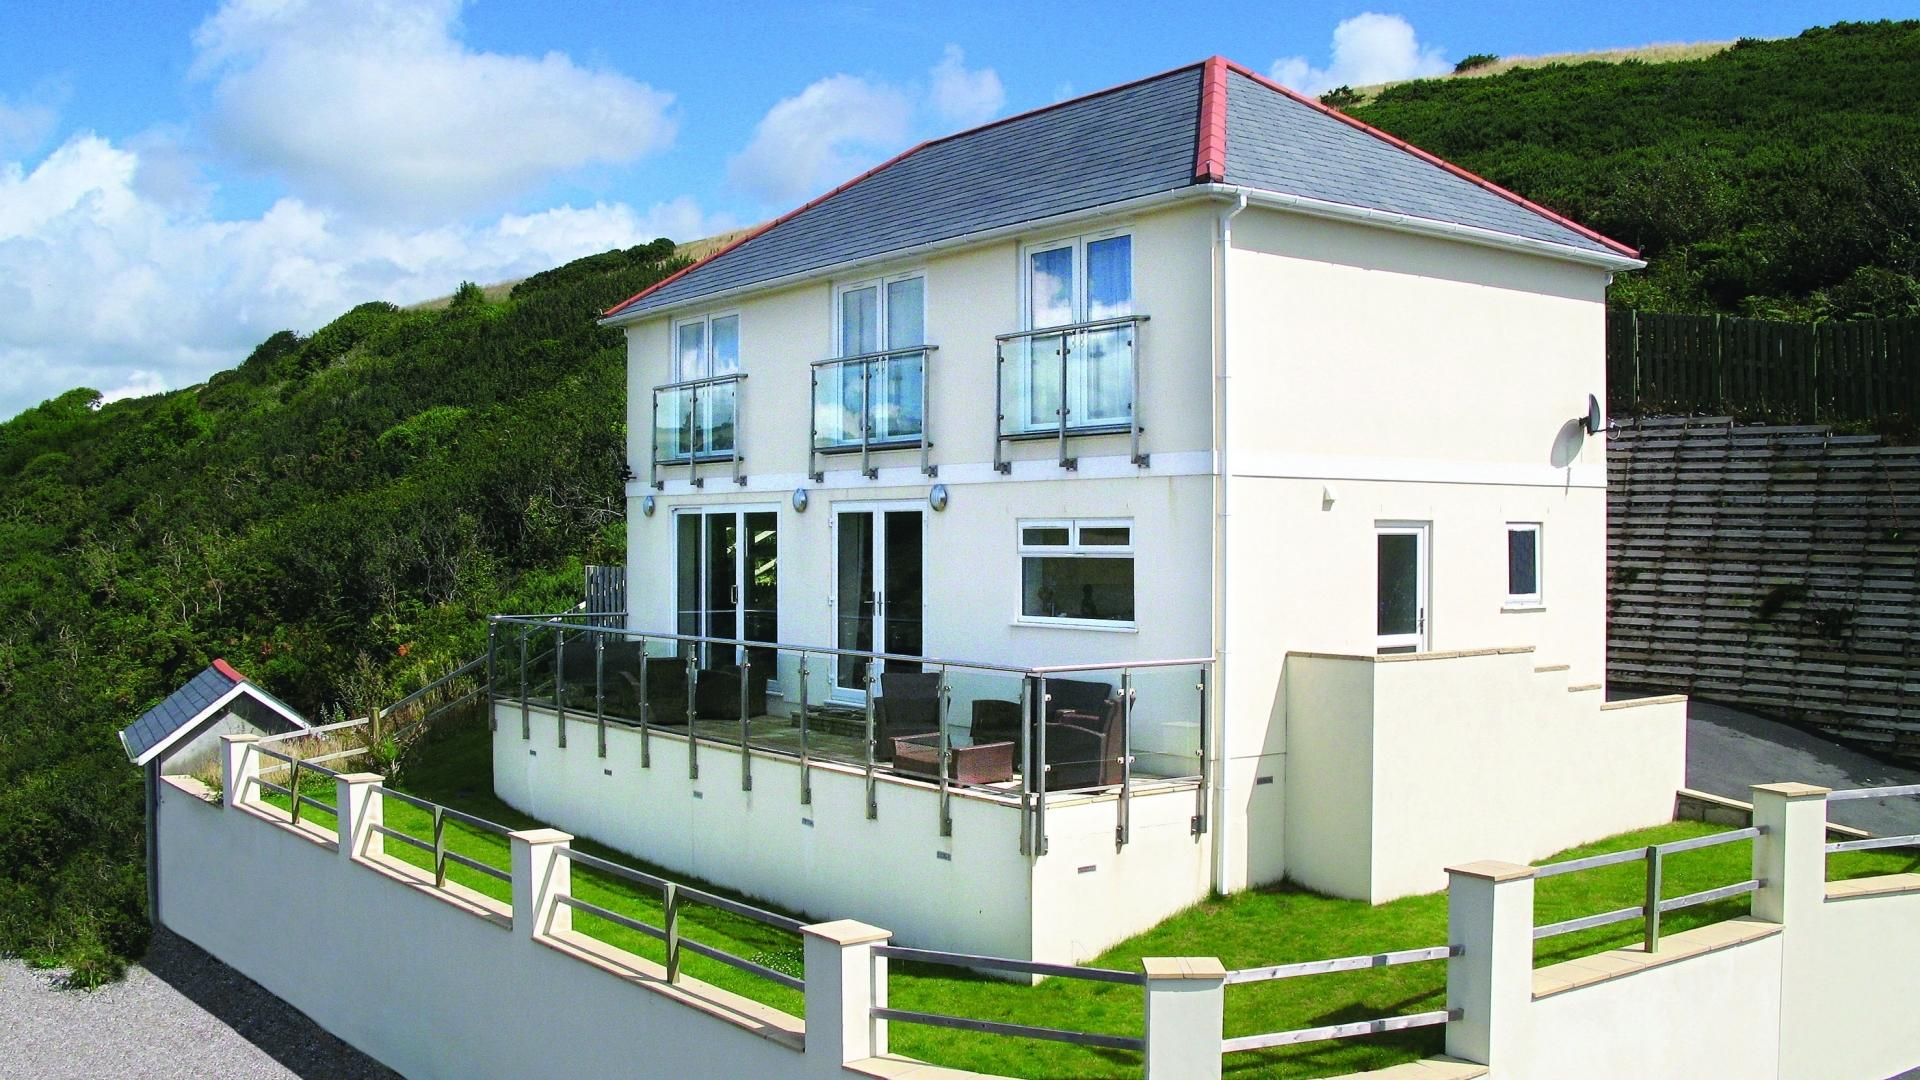 4 Bedroom Private villa in Cornwall, United Kingdom